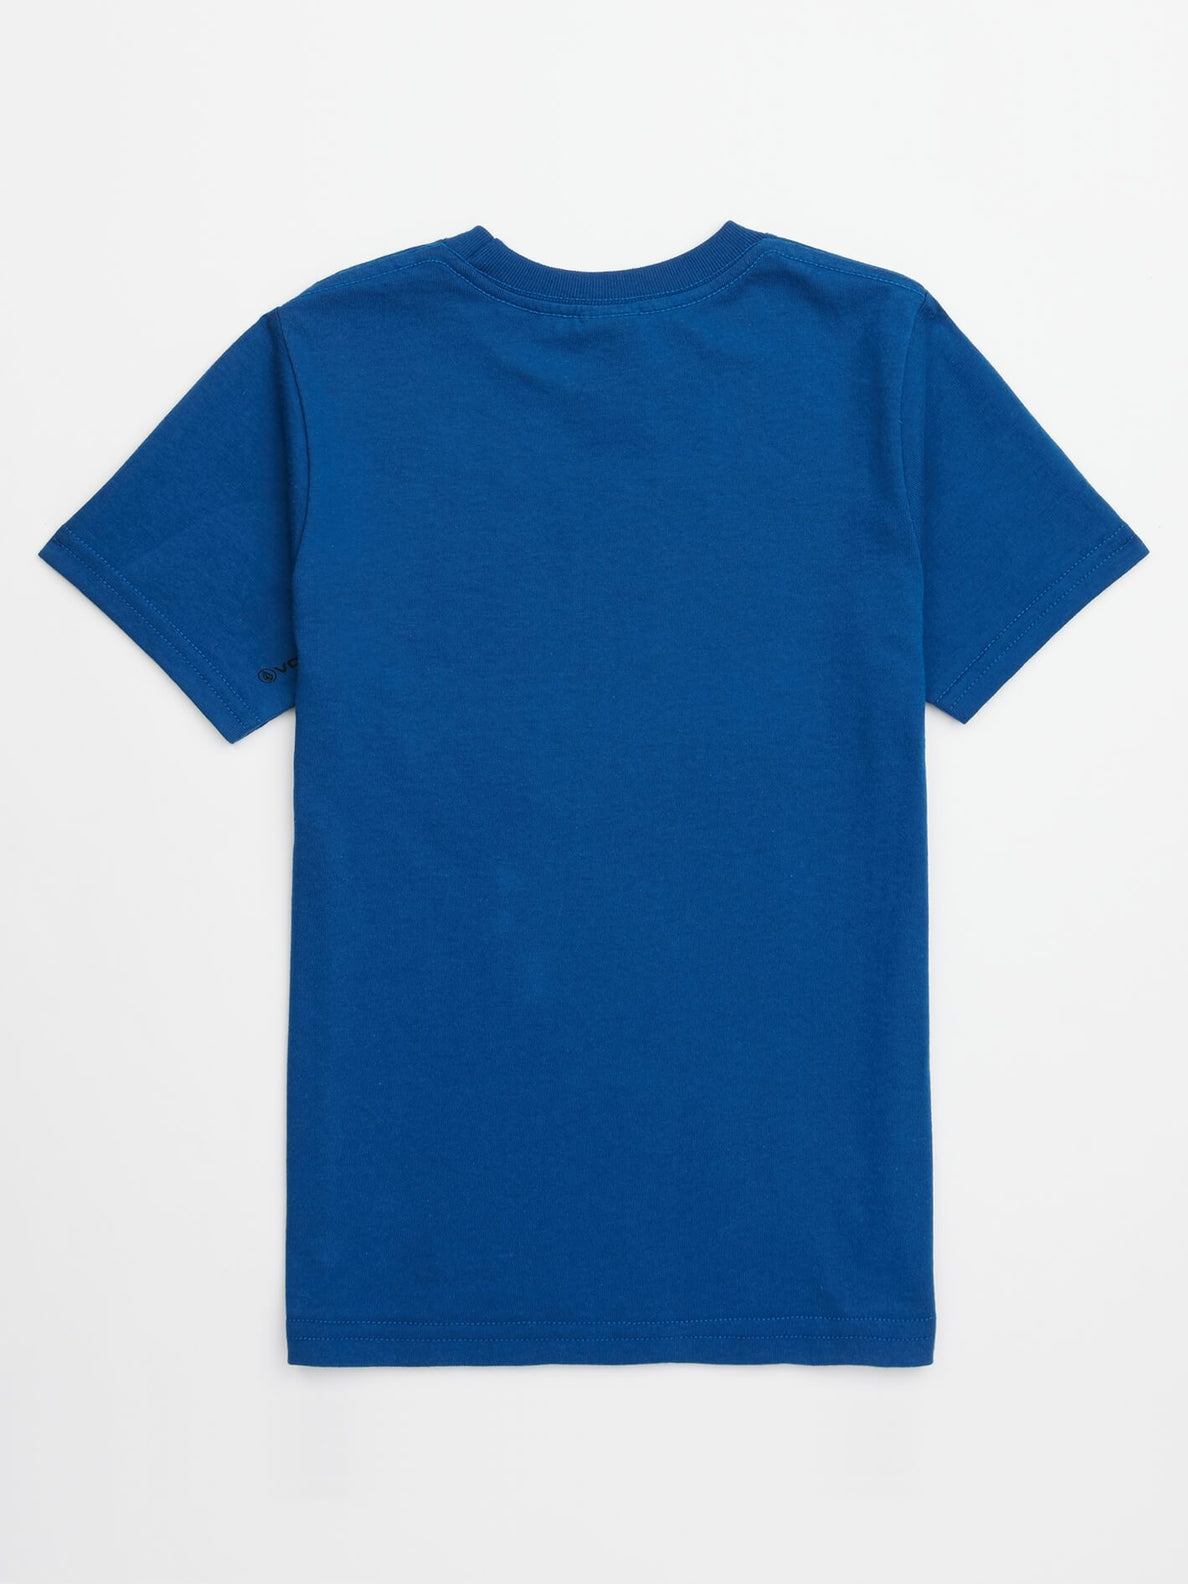 Little Boys Jolly Rebel Tee In Camper Blue, Back View